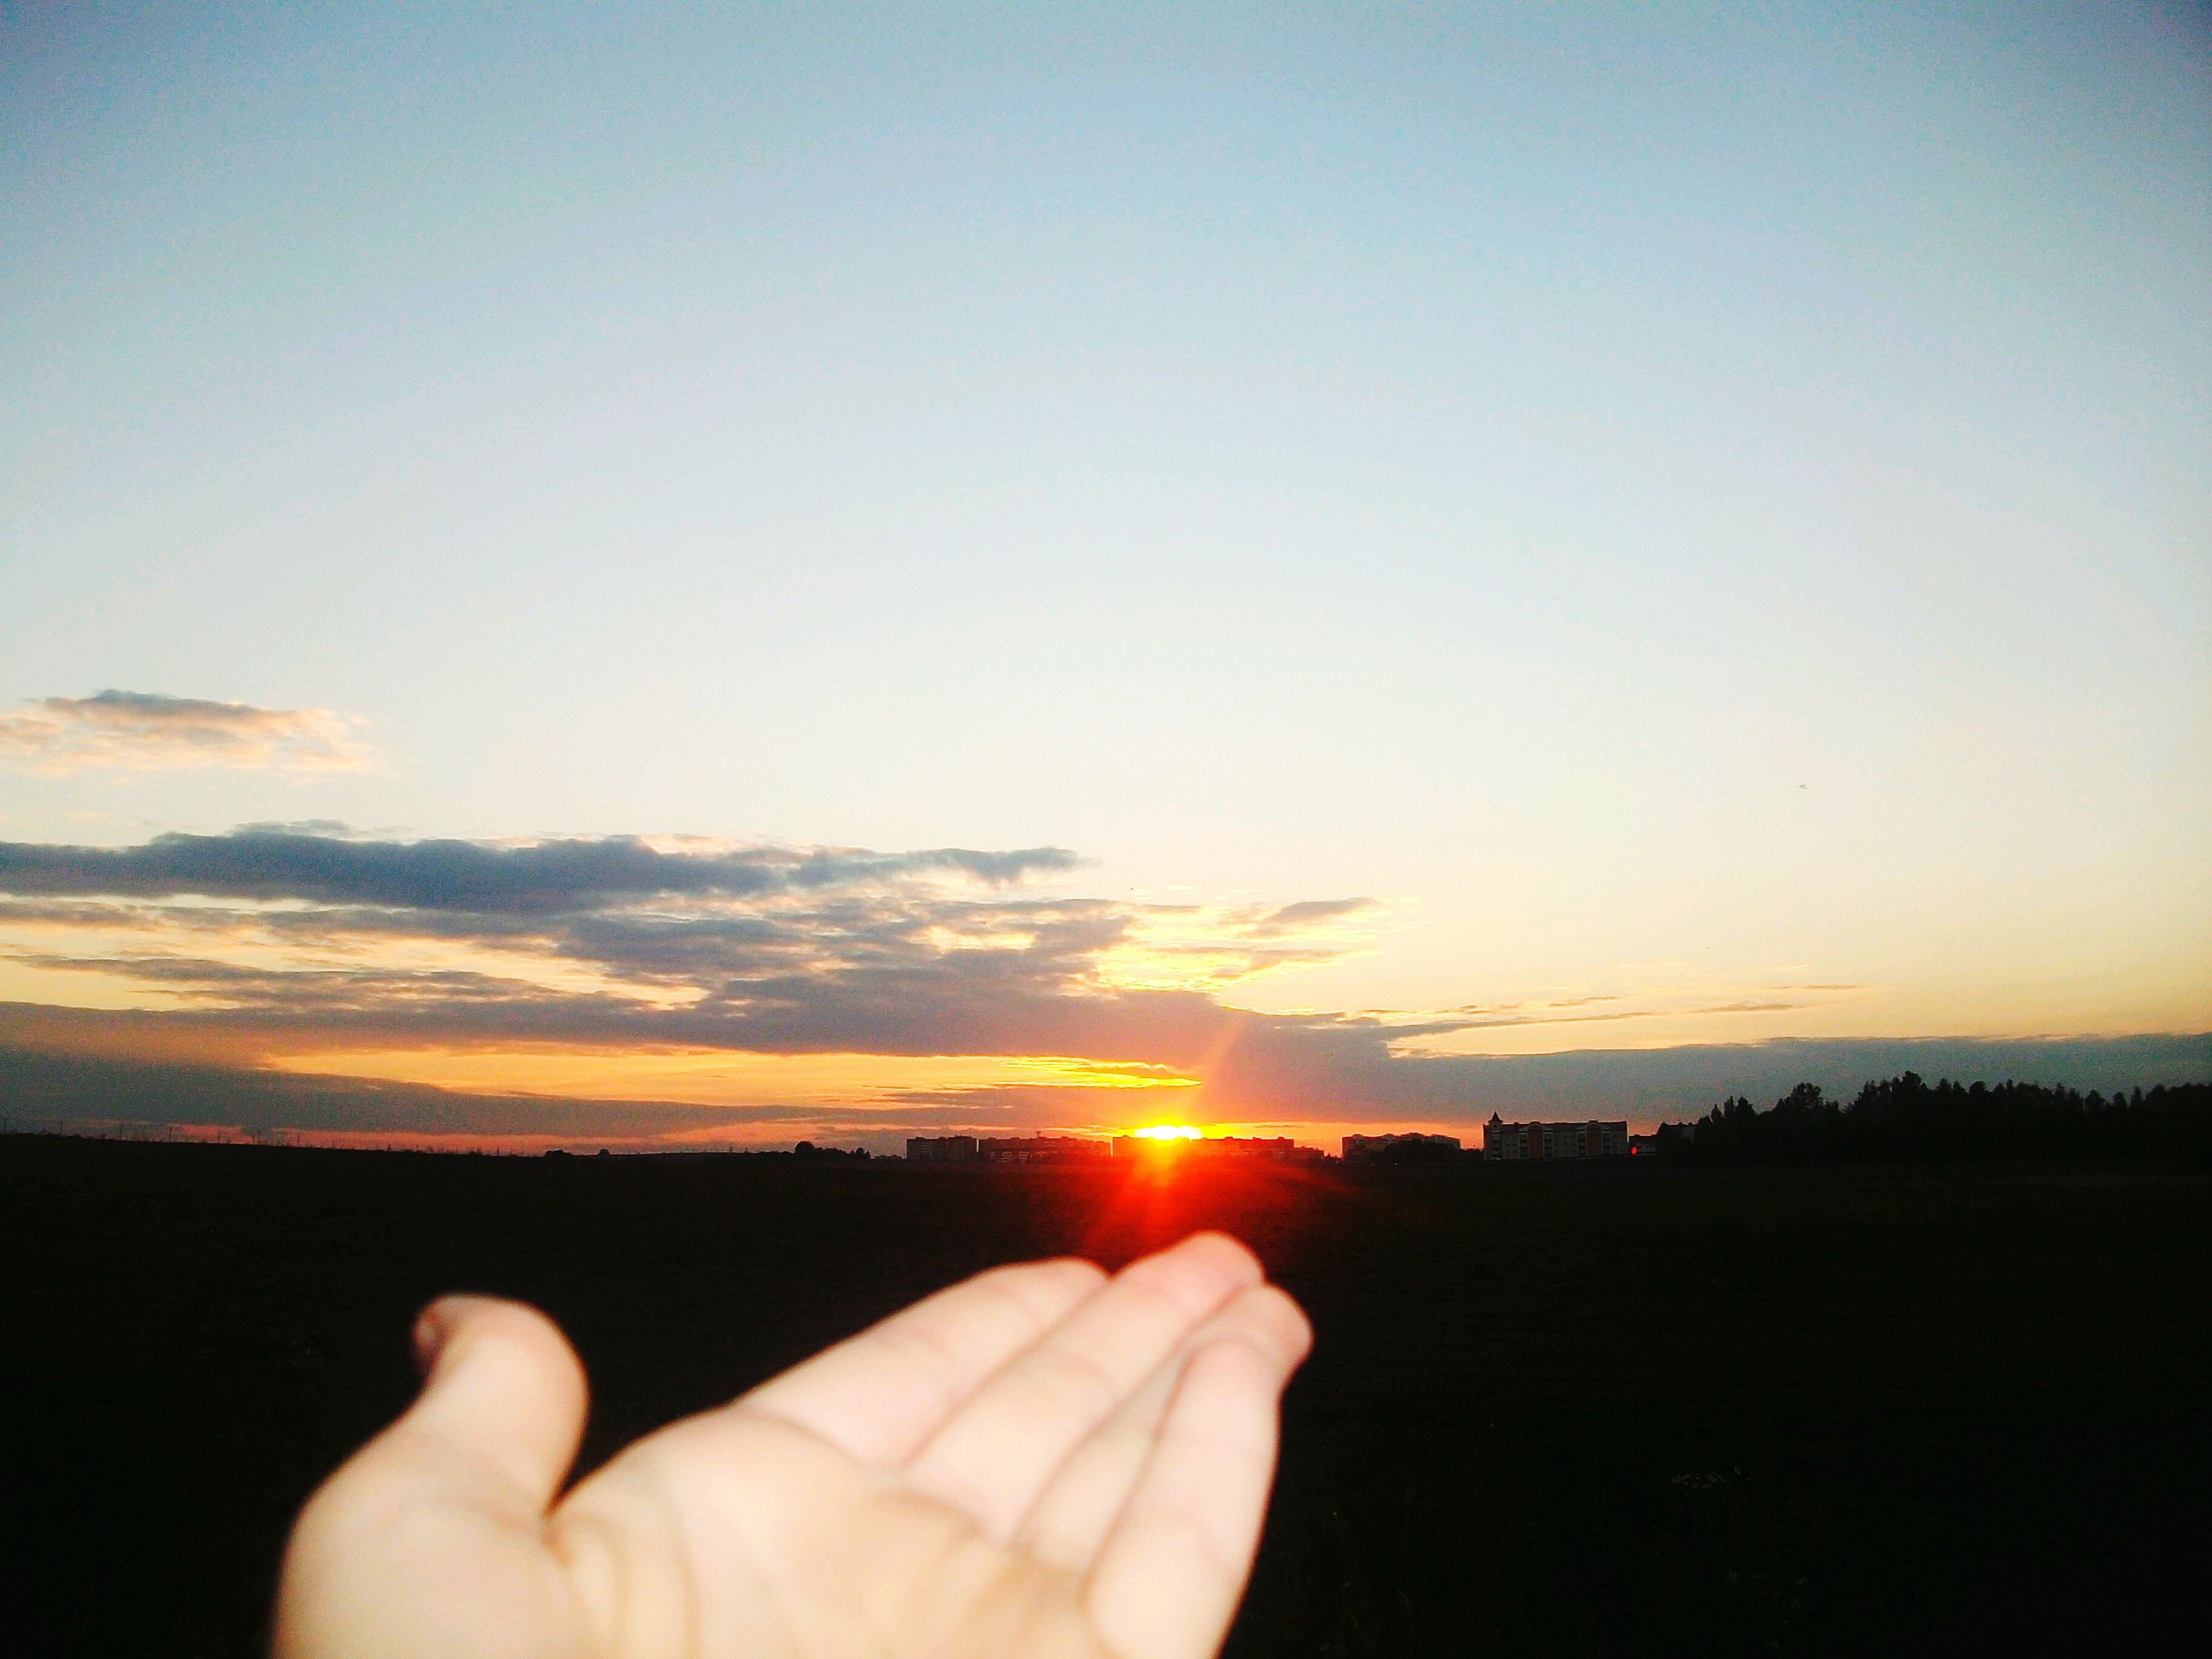 sunset, sun, person, orange color, silhouette, part of, unrecognizable person, sky, sunlight, copy space, cropped, scenics, holding, beauty in nature, sunbeam, personal perspective, human finger